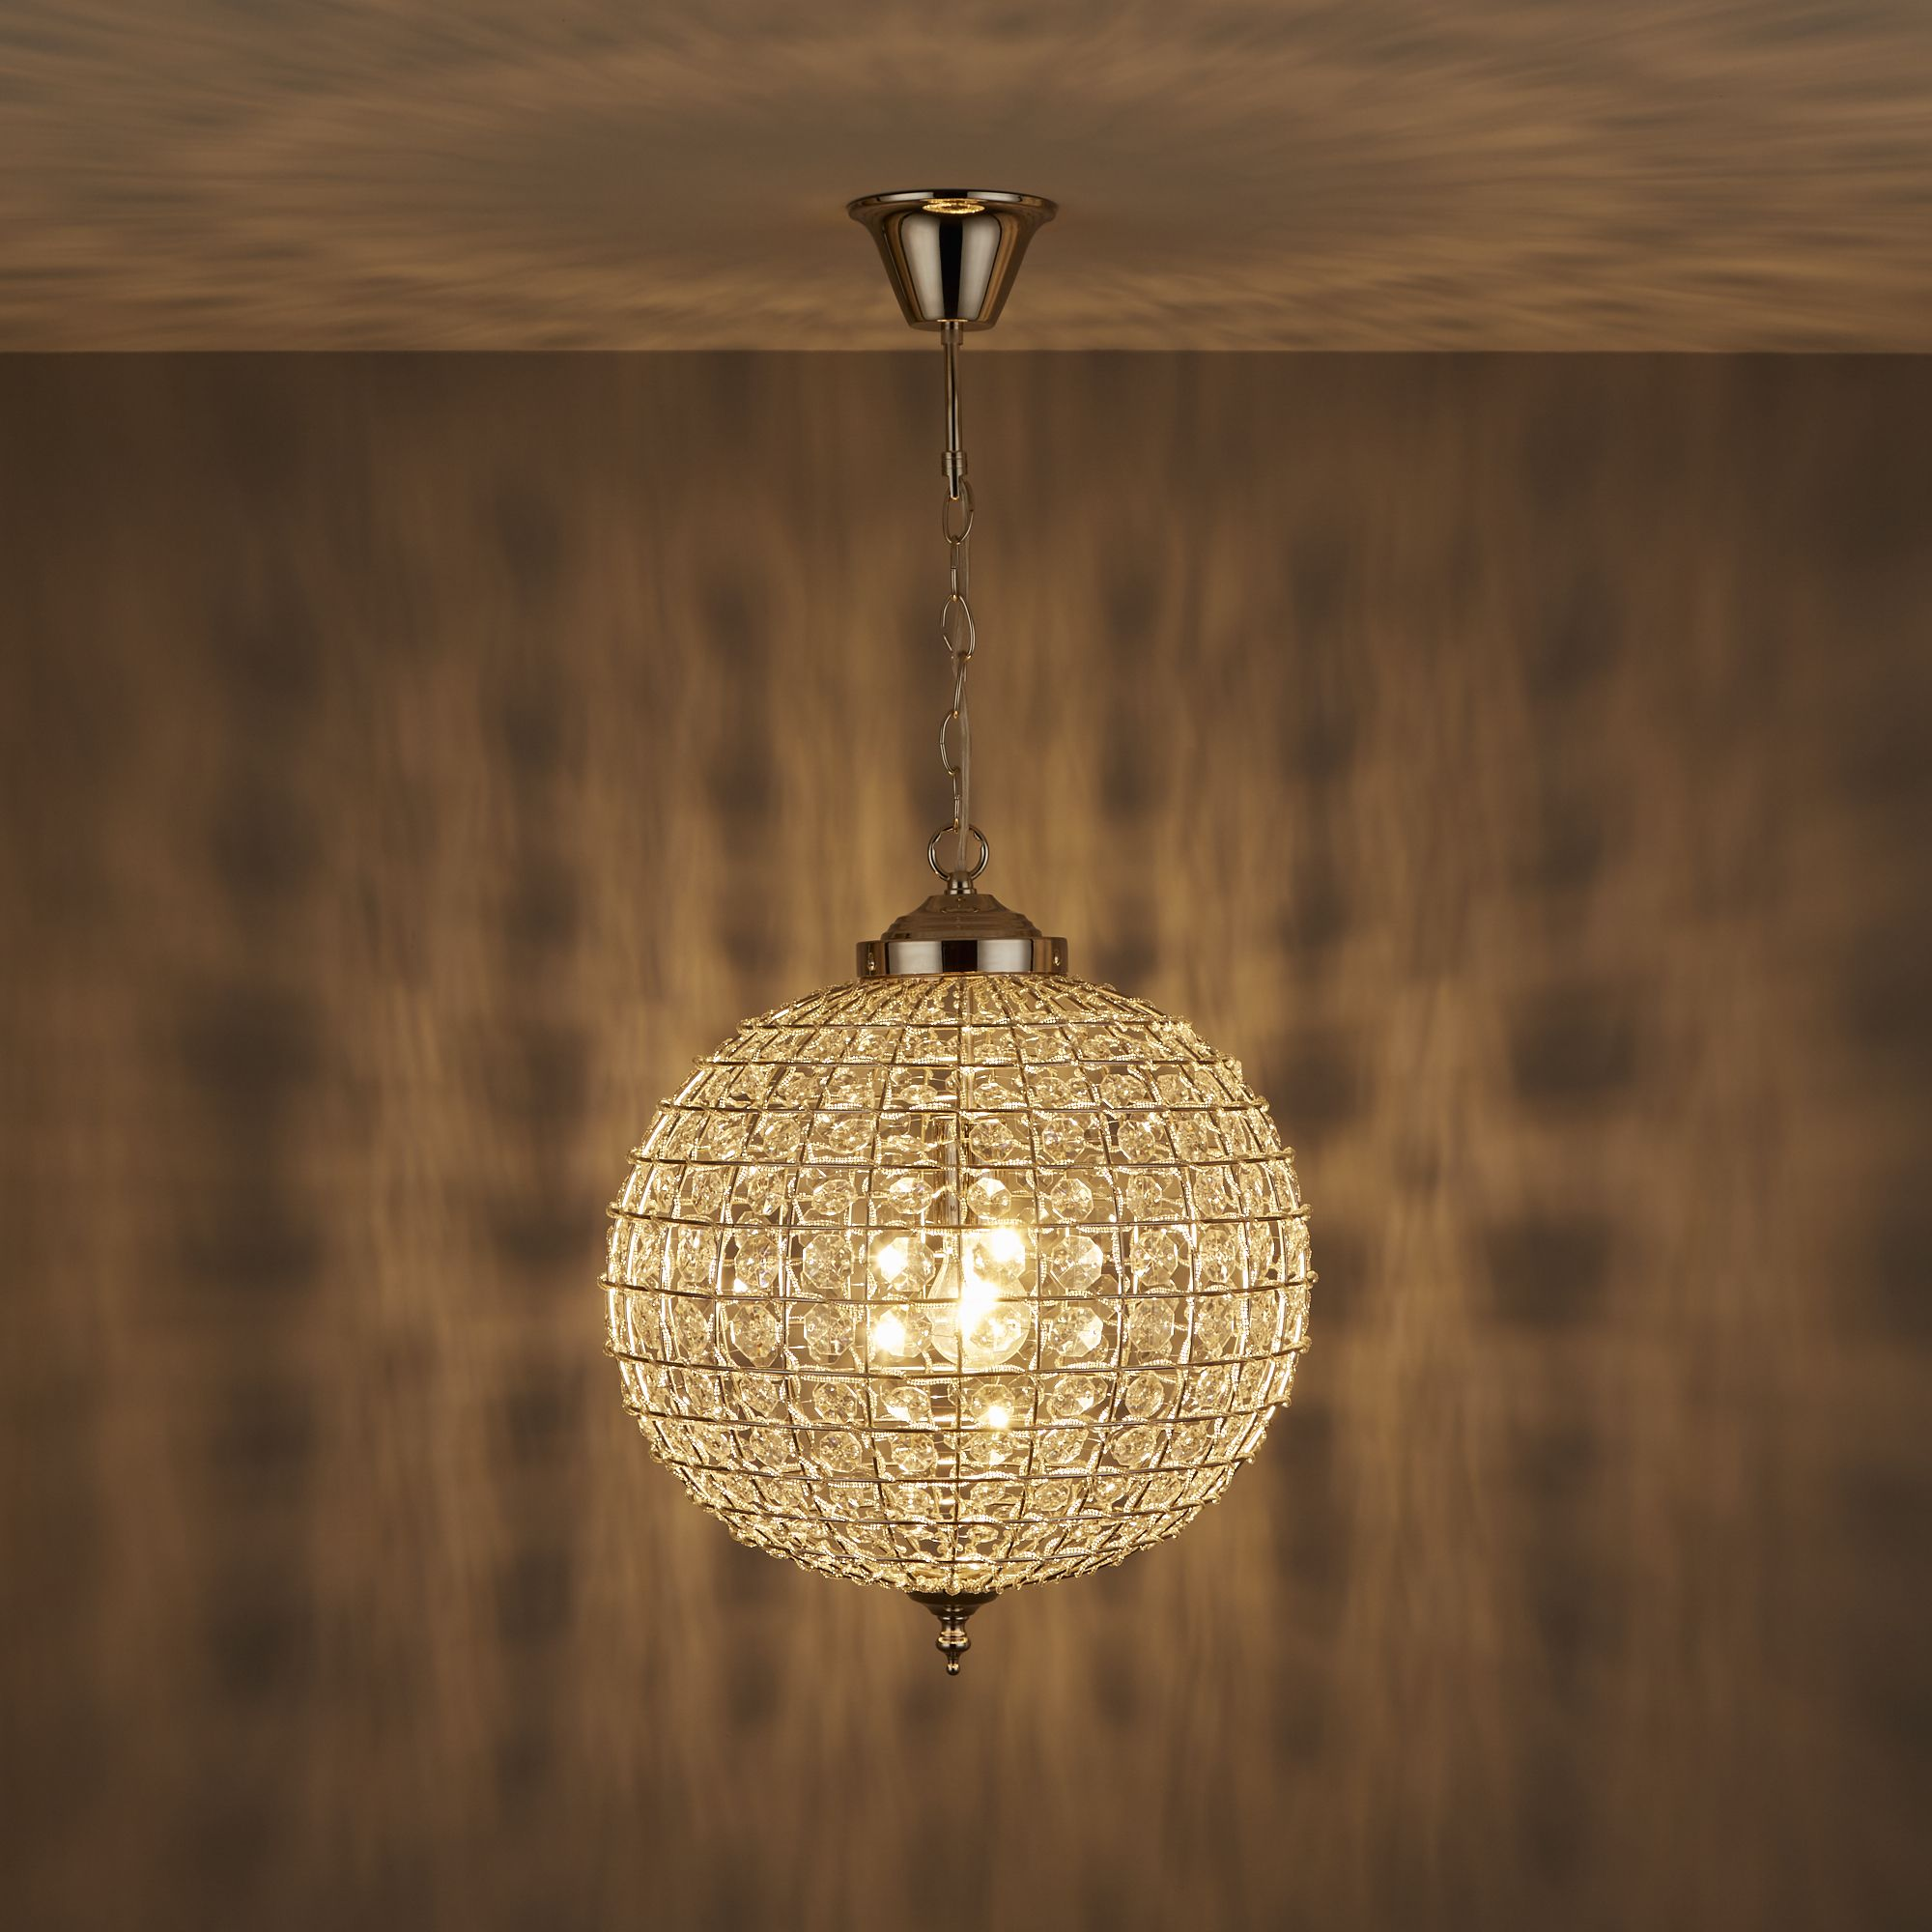 Freya Crystal sphere Nickel effect Pendant ceiling light